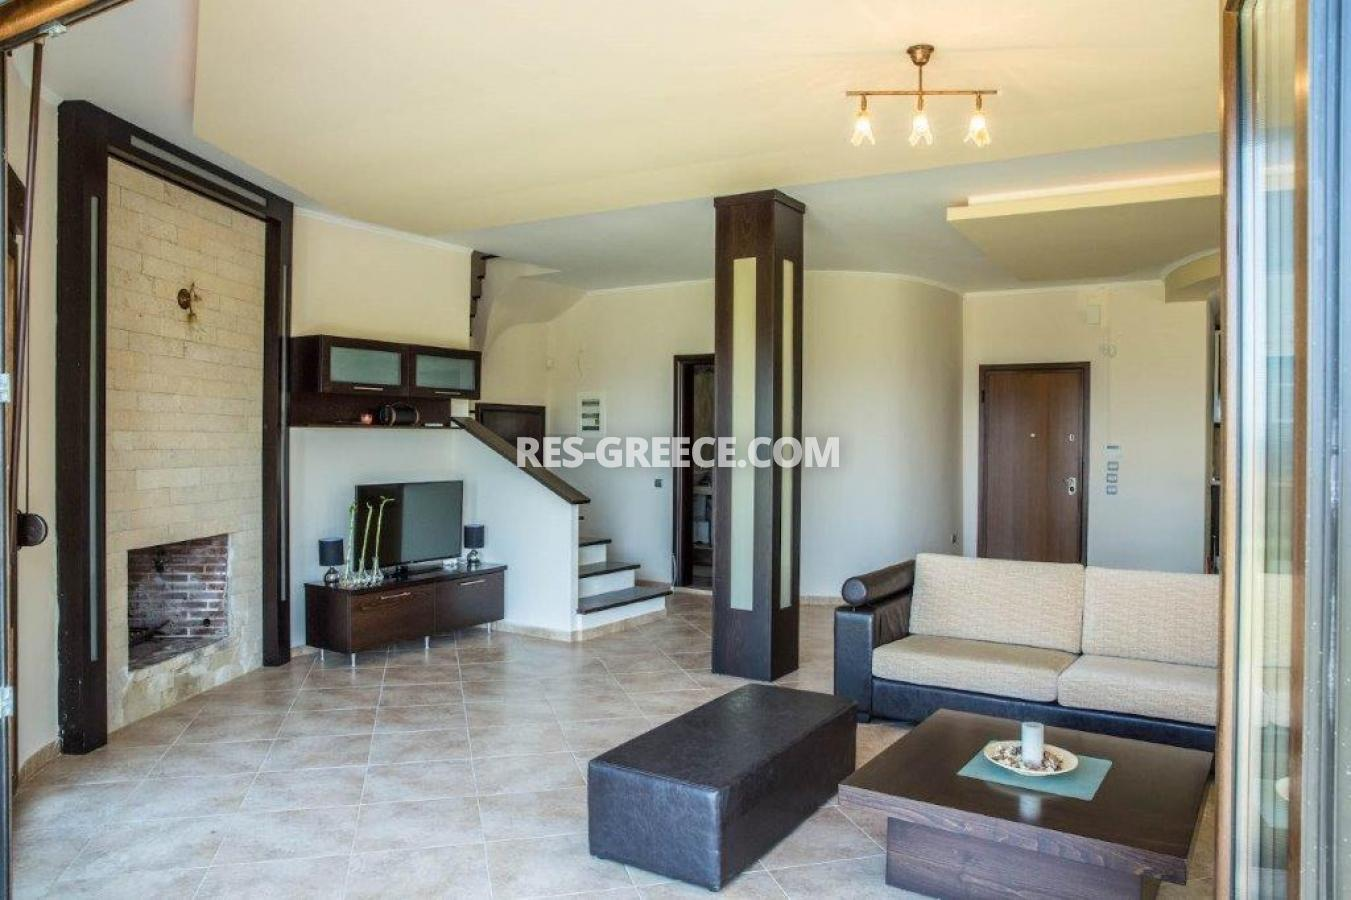 Delfini, Halkidiki-Kassandra, Greece - complex of 2 villas with panoramic view for sale - Photo 8